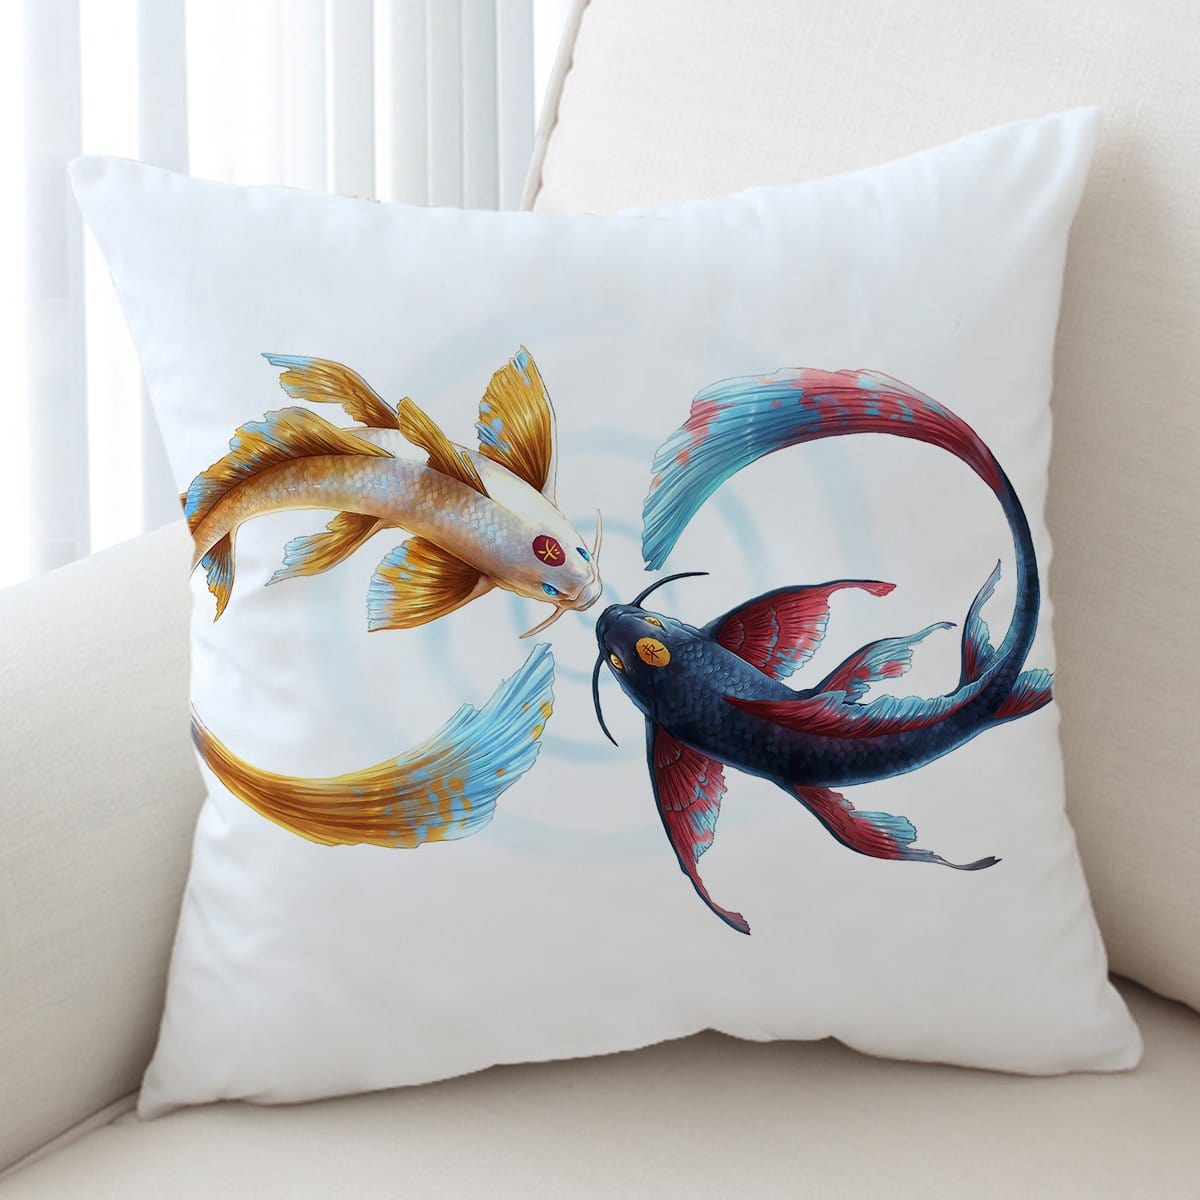 Eternal Bond Cushion Cover